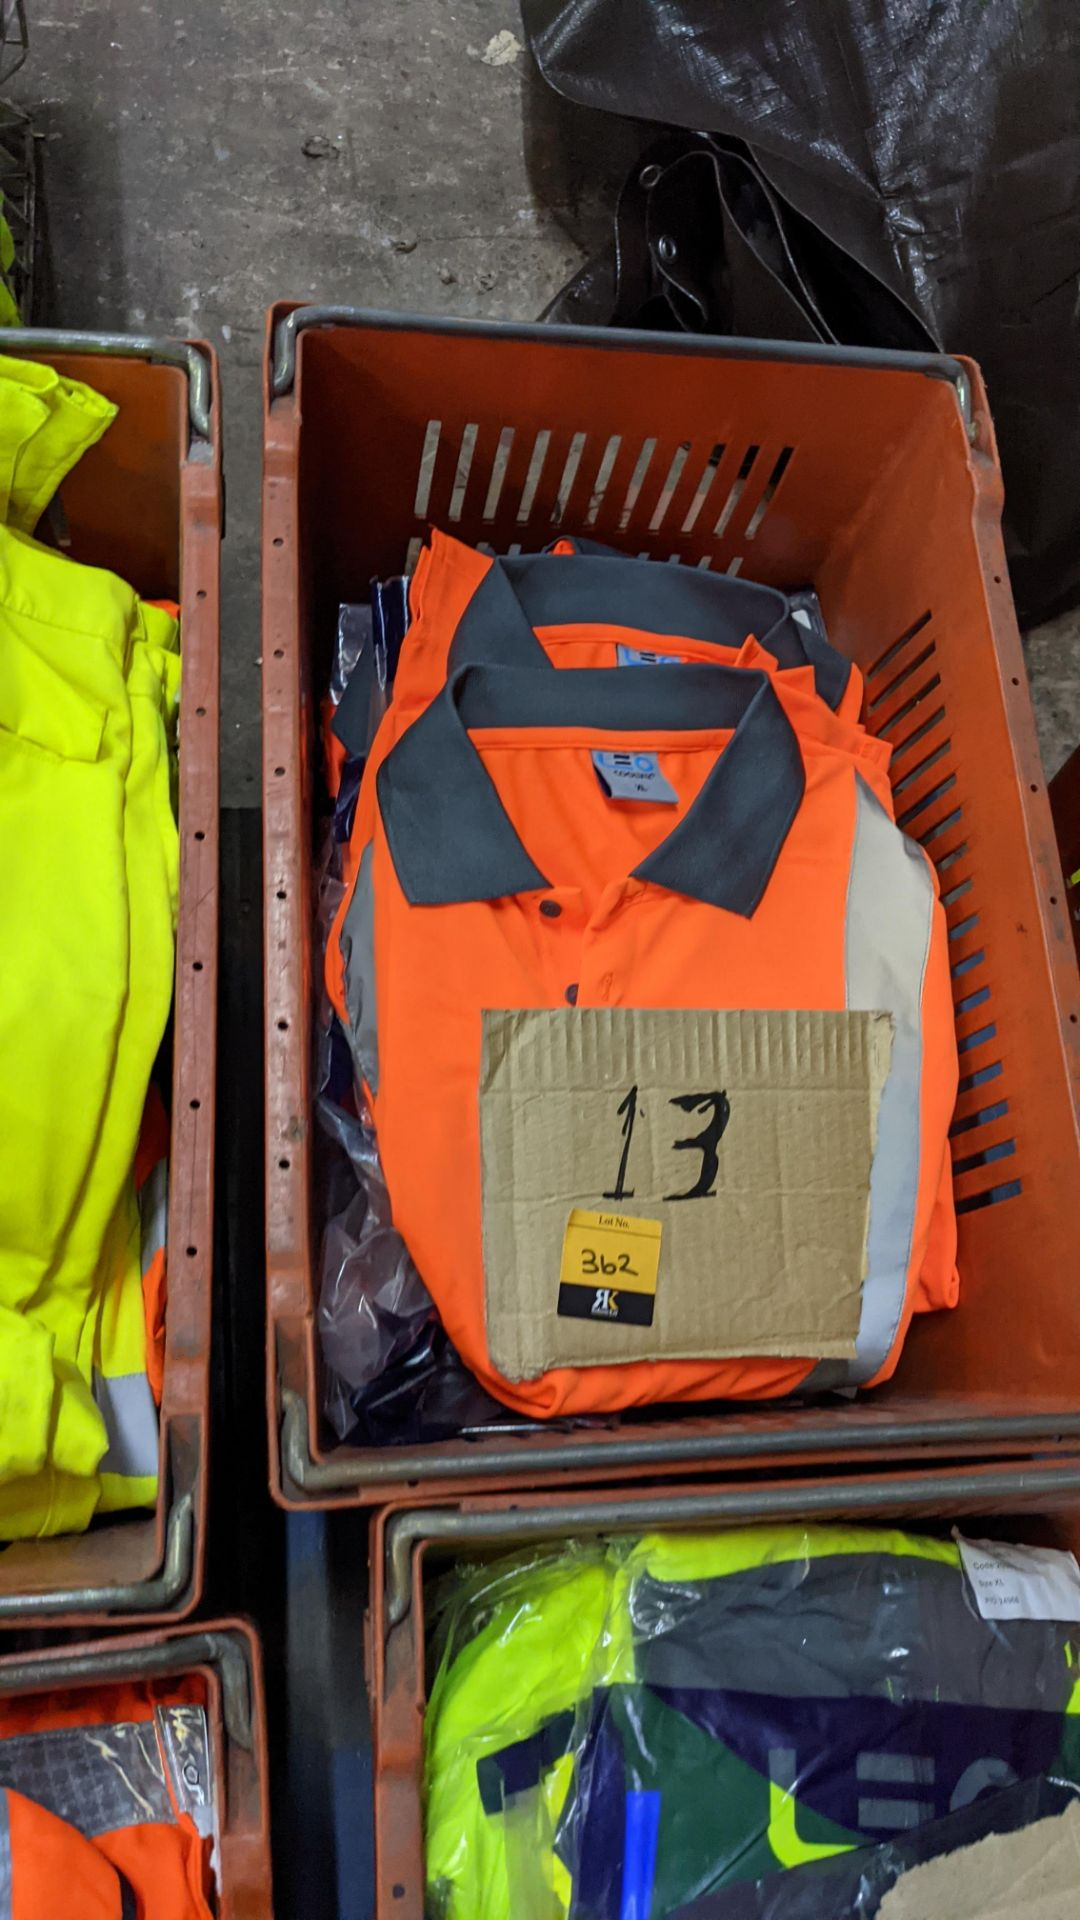 13 off hi-vis polo shirts (orange) - Image 2 of 4